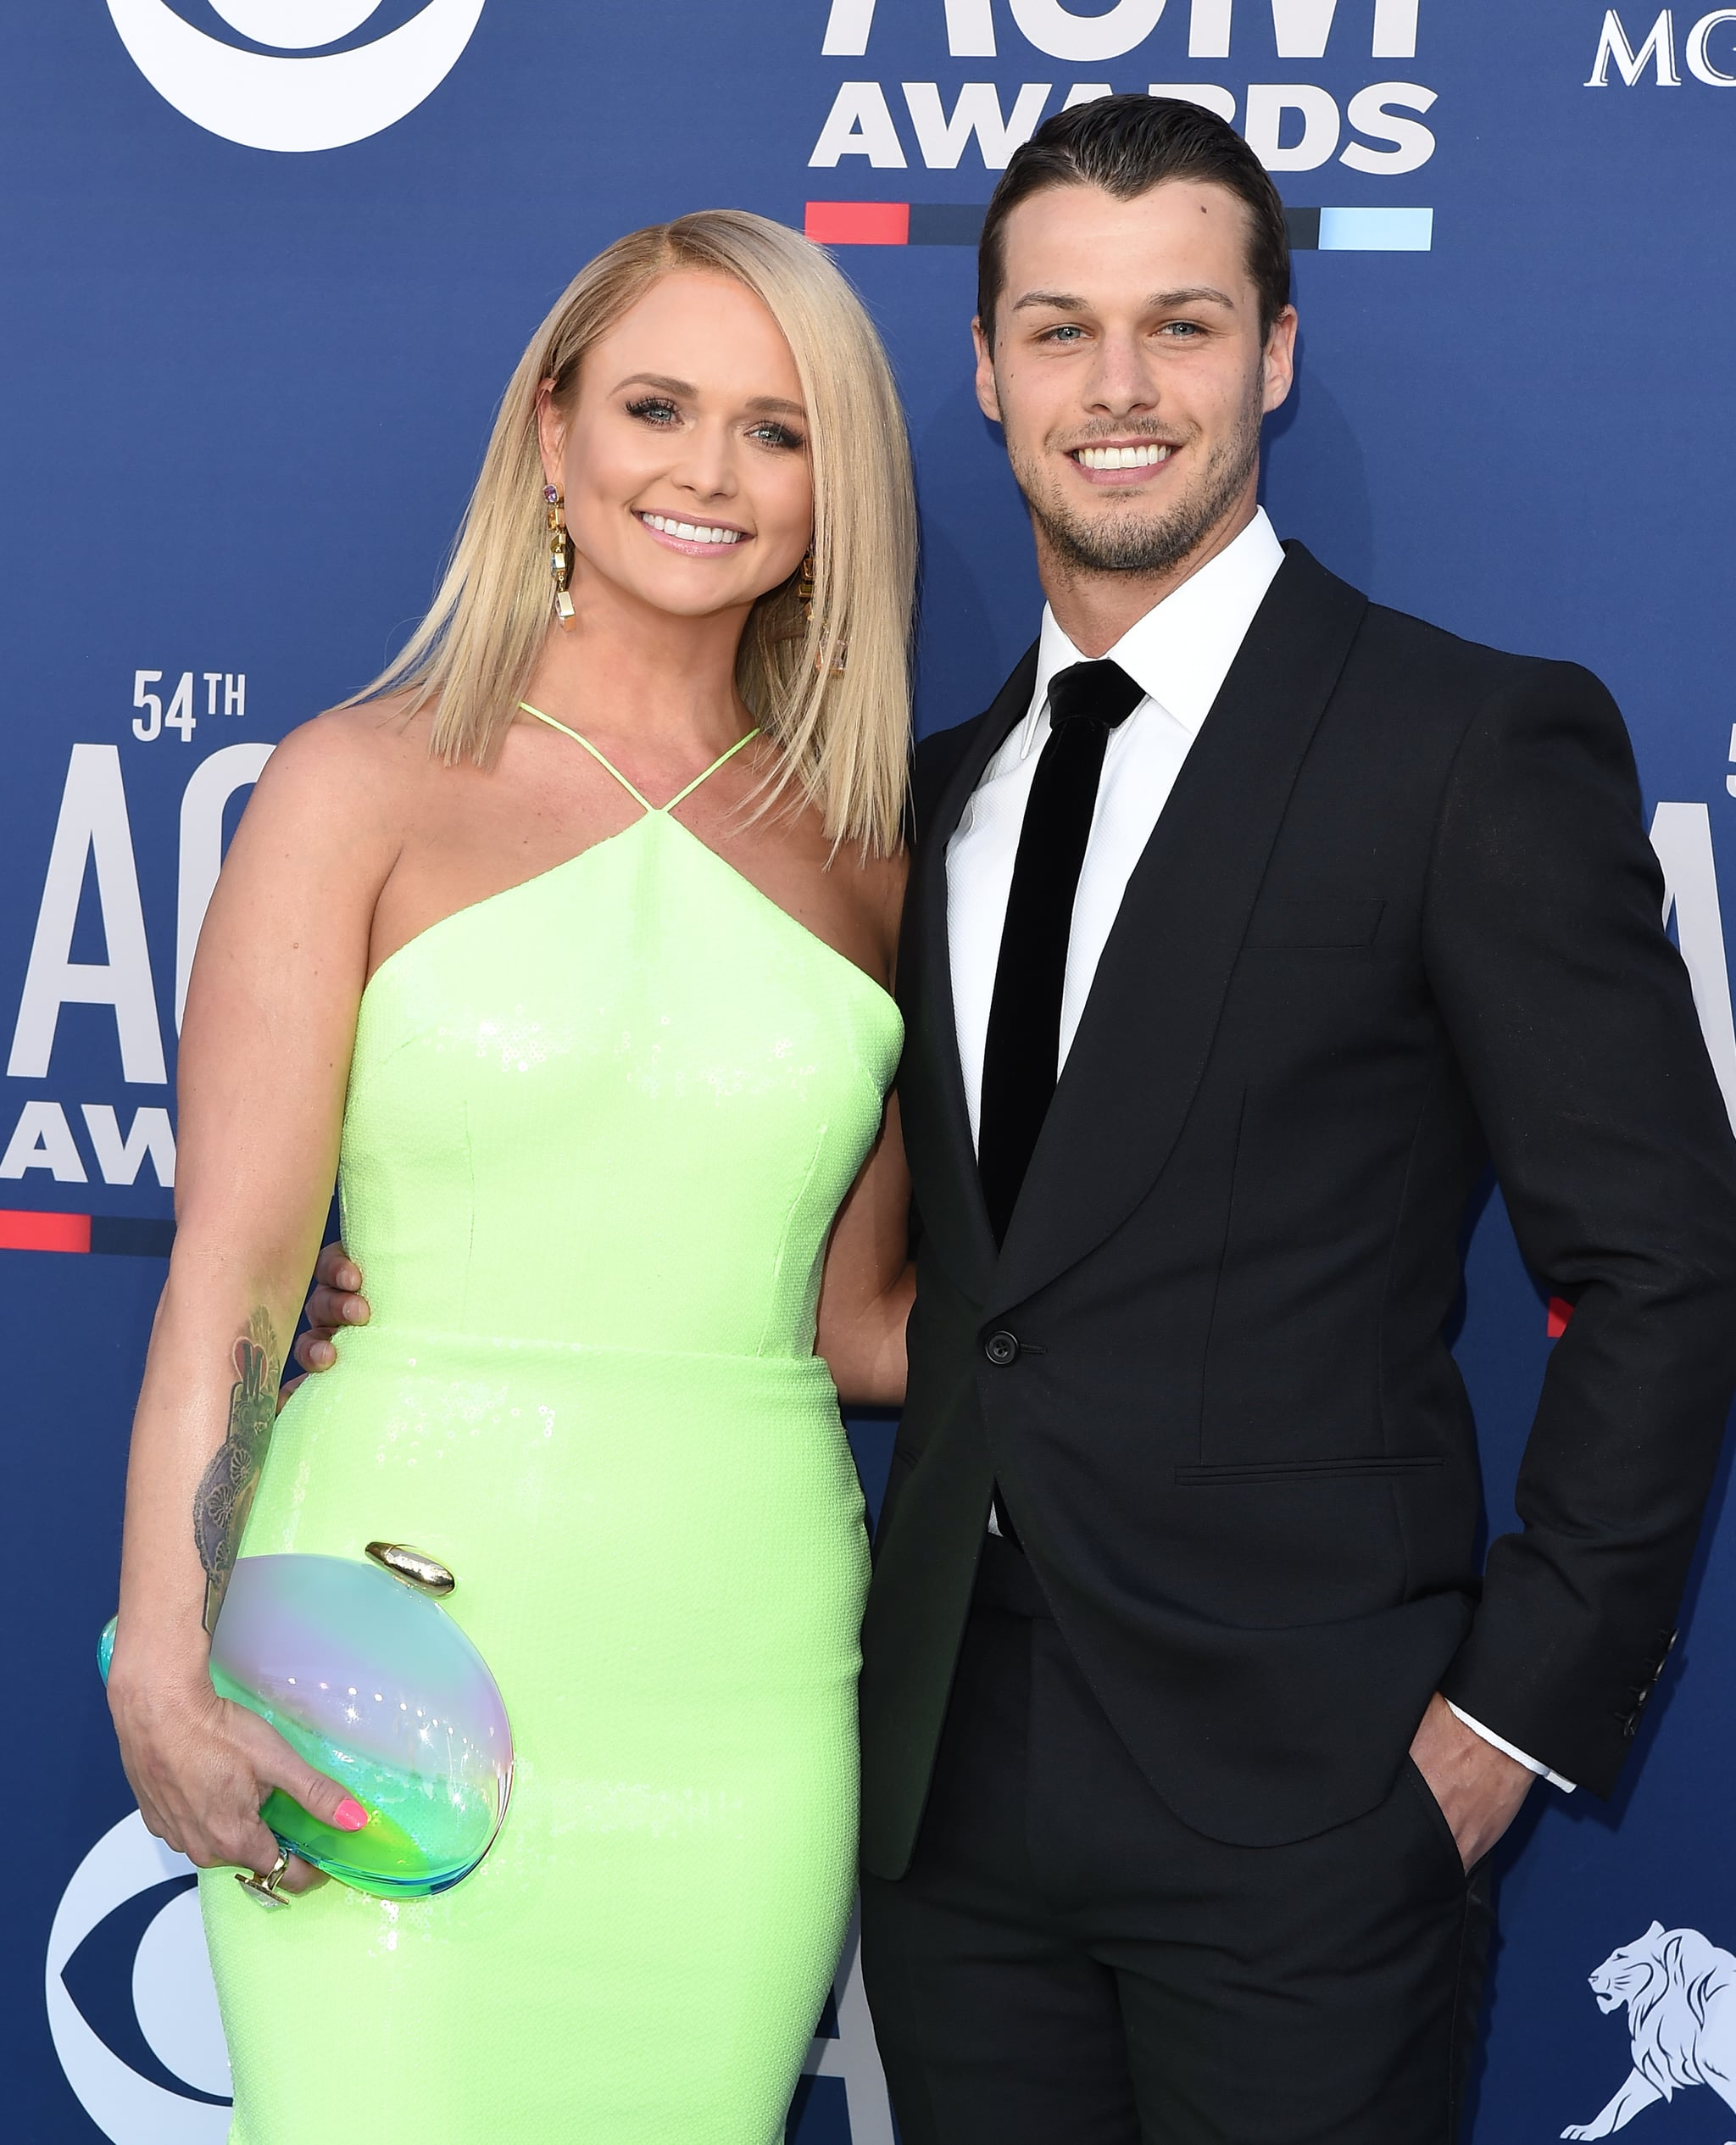 LAS VEGAS, NEVADA - APRIL 07: Miranda Lambert and Brendan McLoughlin attend the 54th Academy of Country Music Awards at MGM Grand Garden Arena on April 07, 2019 in Las Vegas, Nevada. (Photo by Axelle/Bauer-Griffin/FilmMagic)